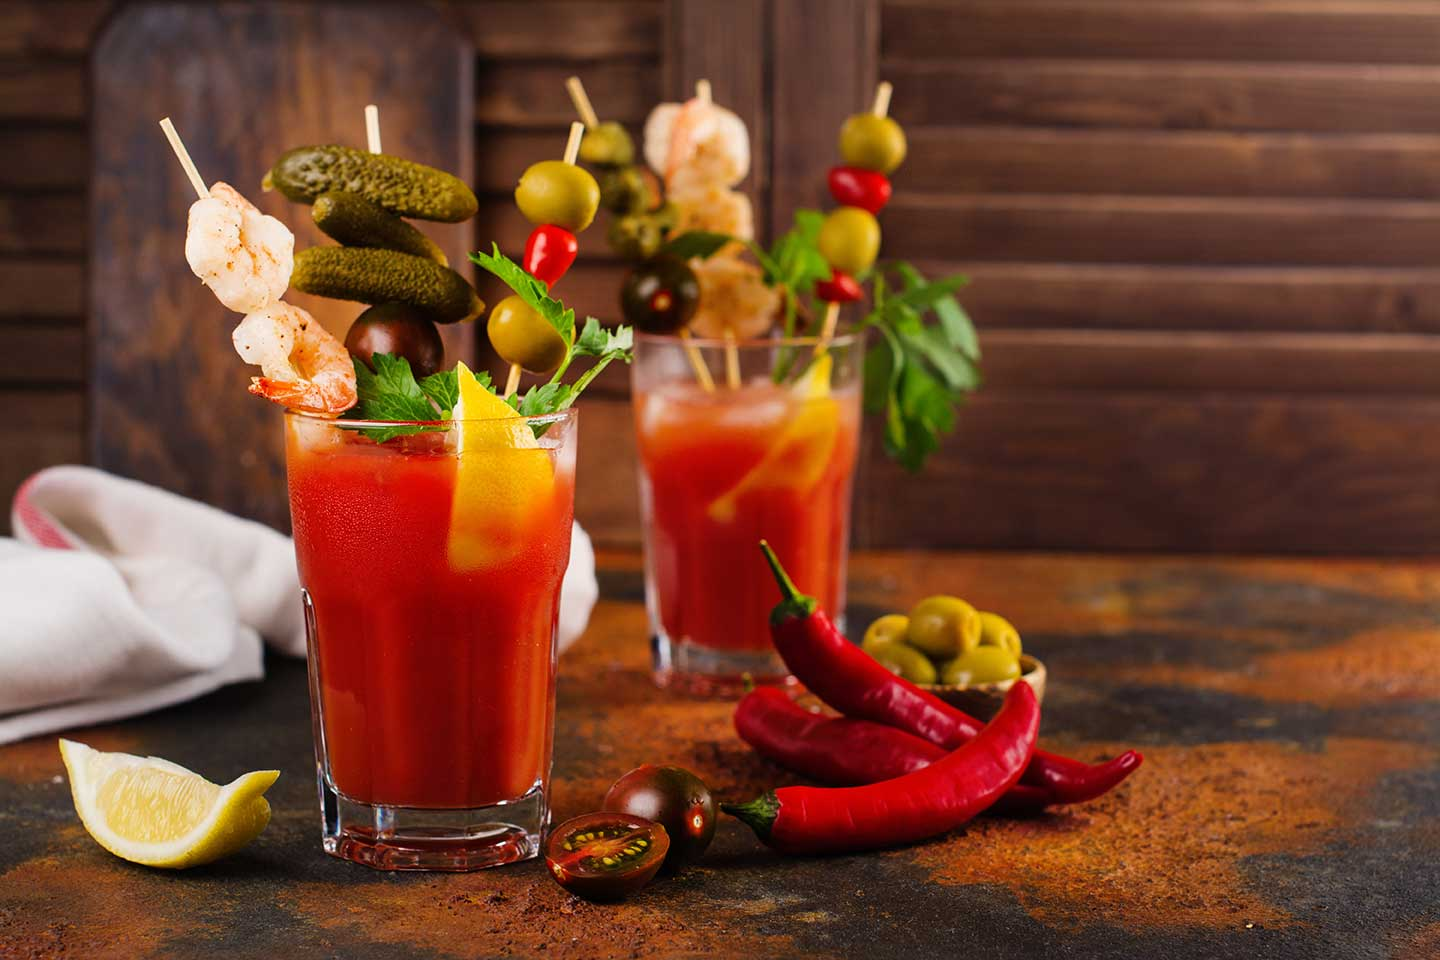 Spicy Cajun Bloody Mary Cocktail via @mermaidsandmojitos